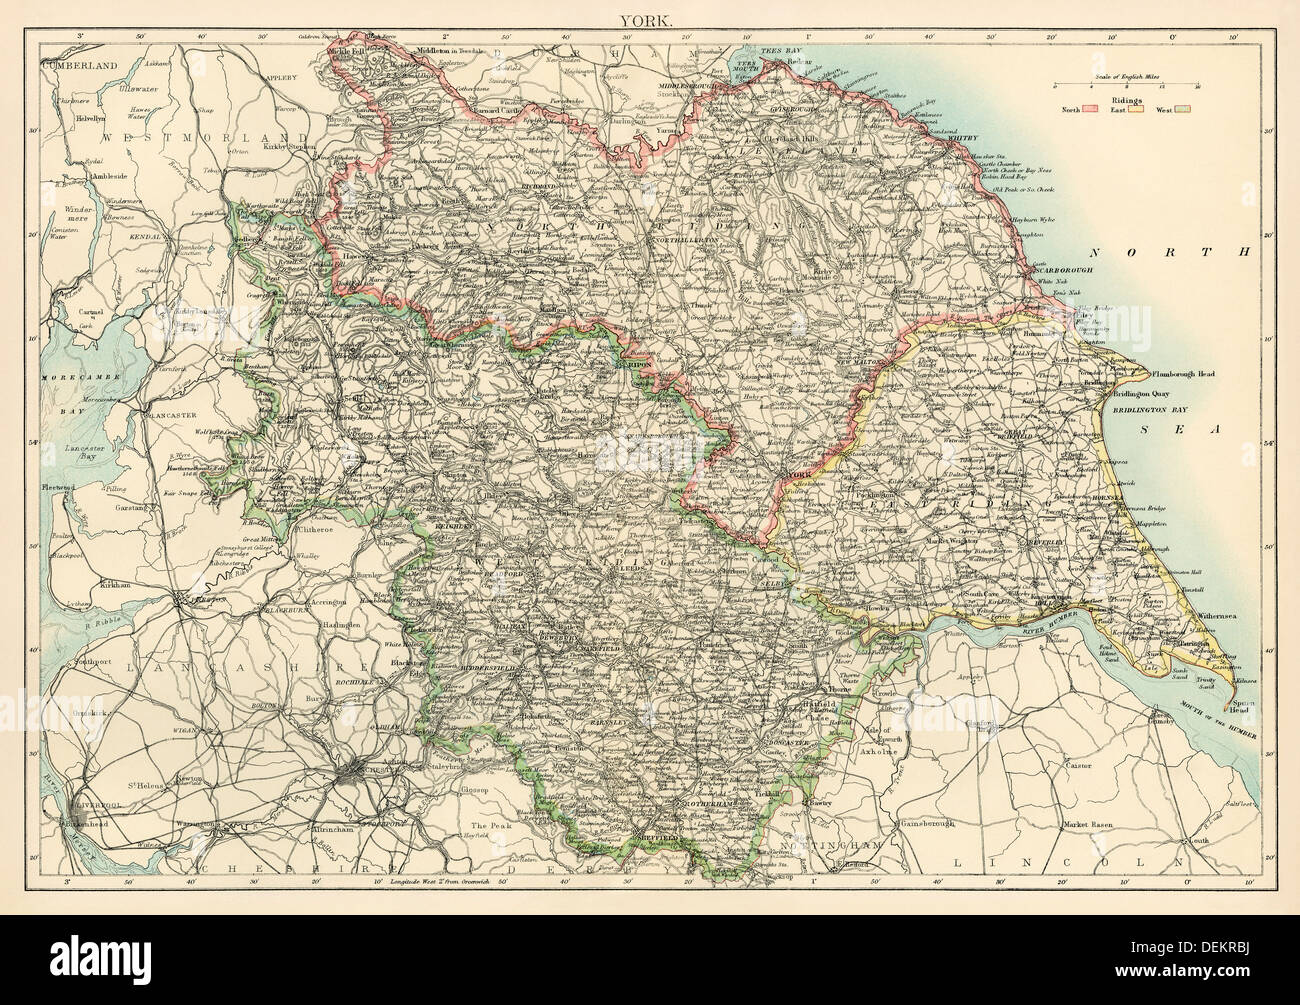 Map of Yorkshire, England, 1870s. Color lithograph - Stock Image